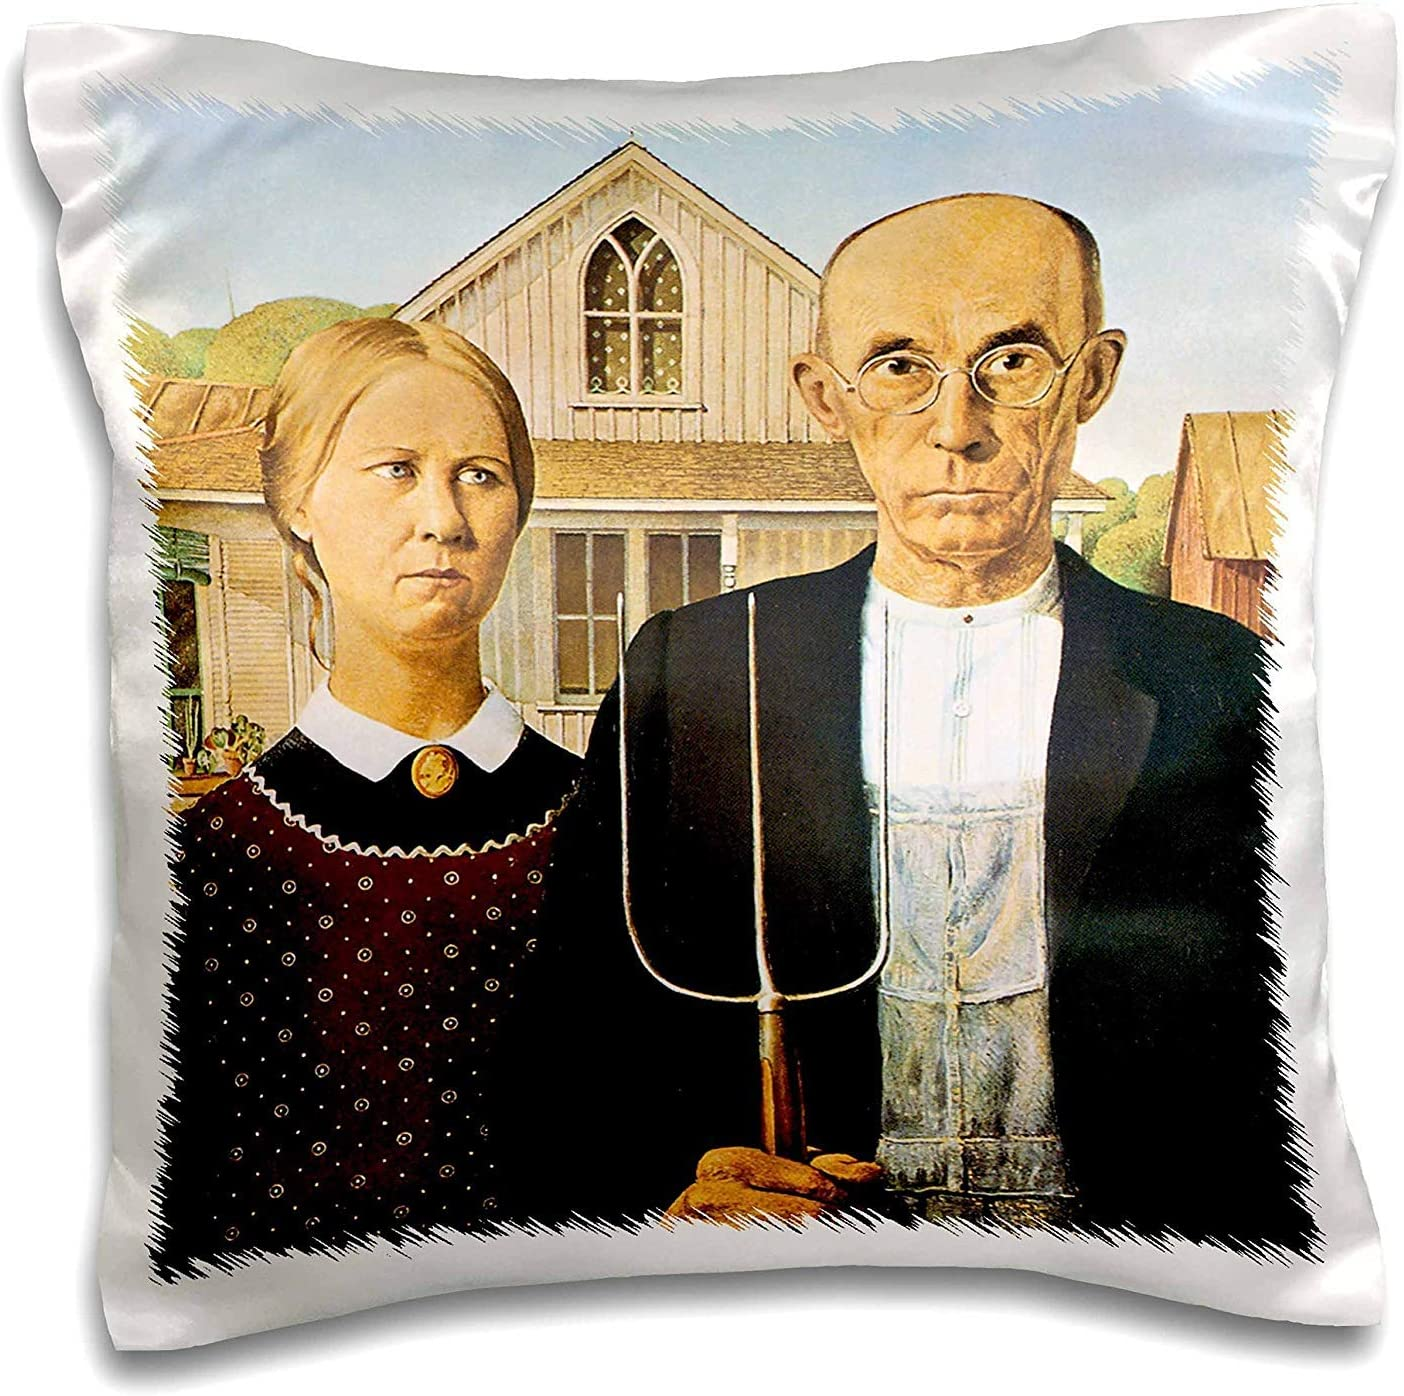 Amazon Com Gooesing American Gothic By Grant Wood Pillow Case Home Kitchen